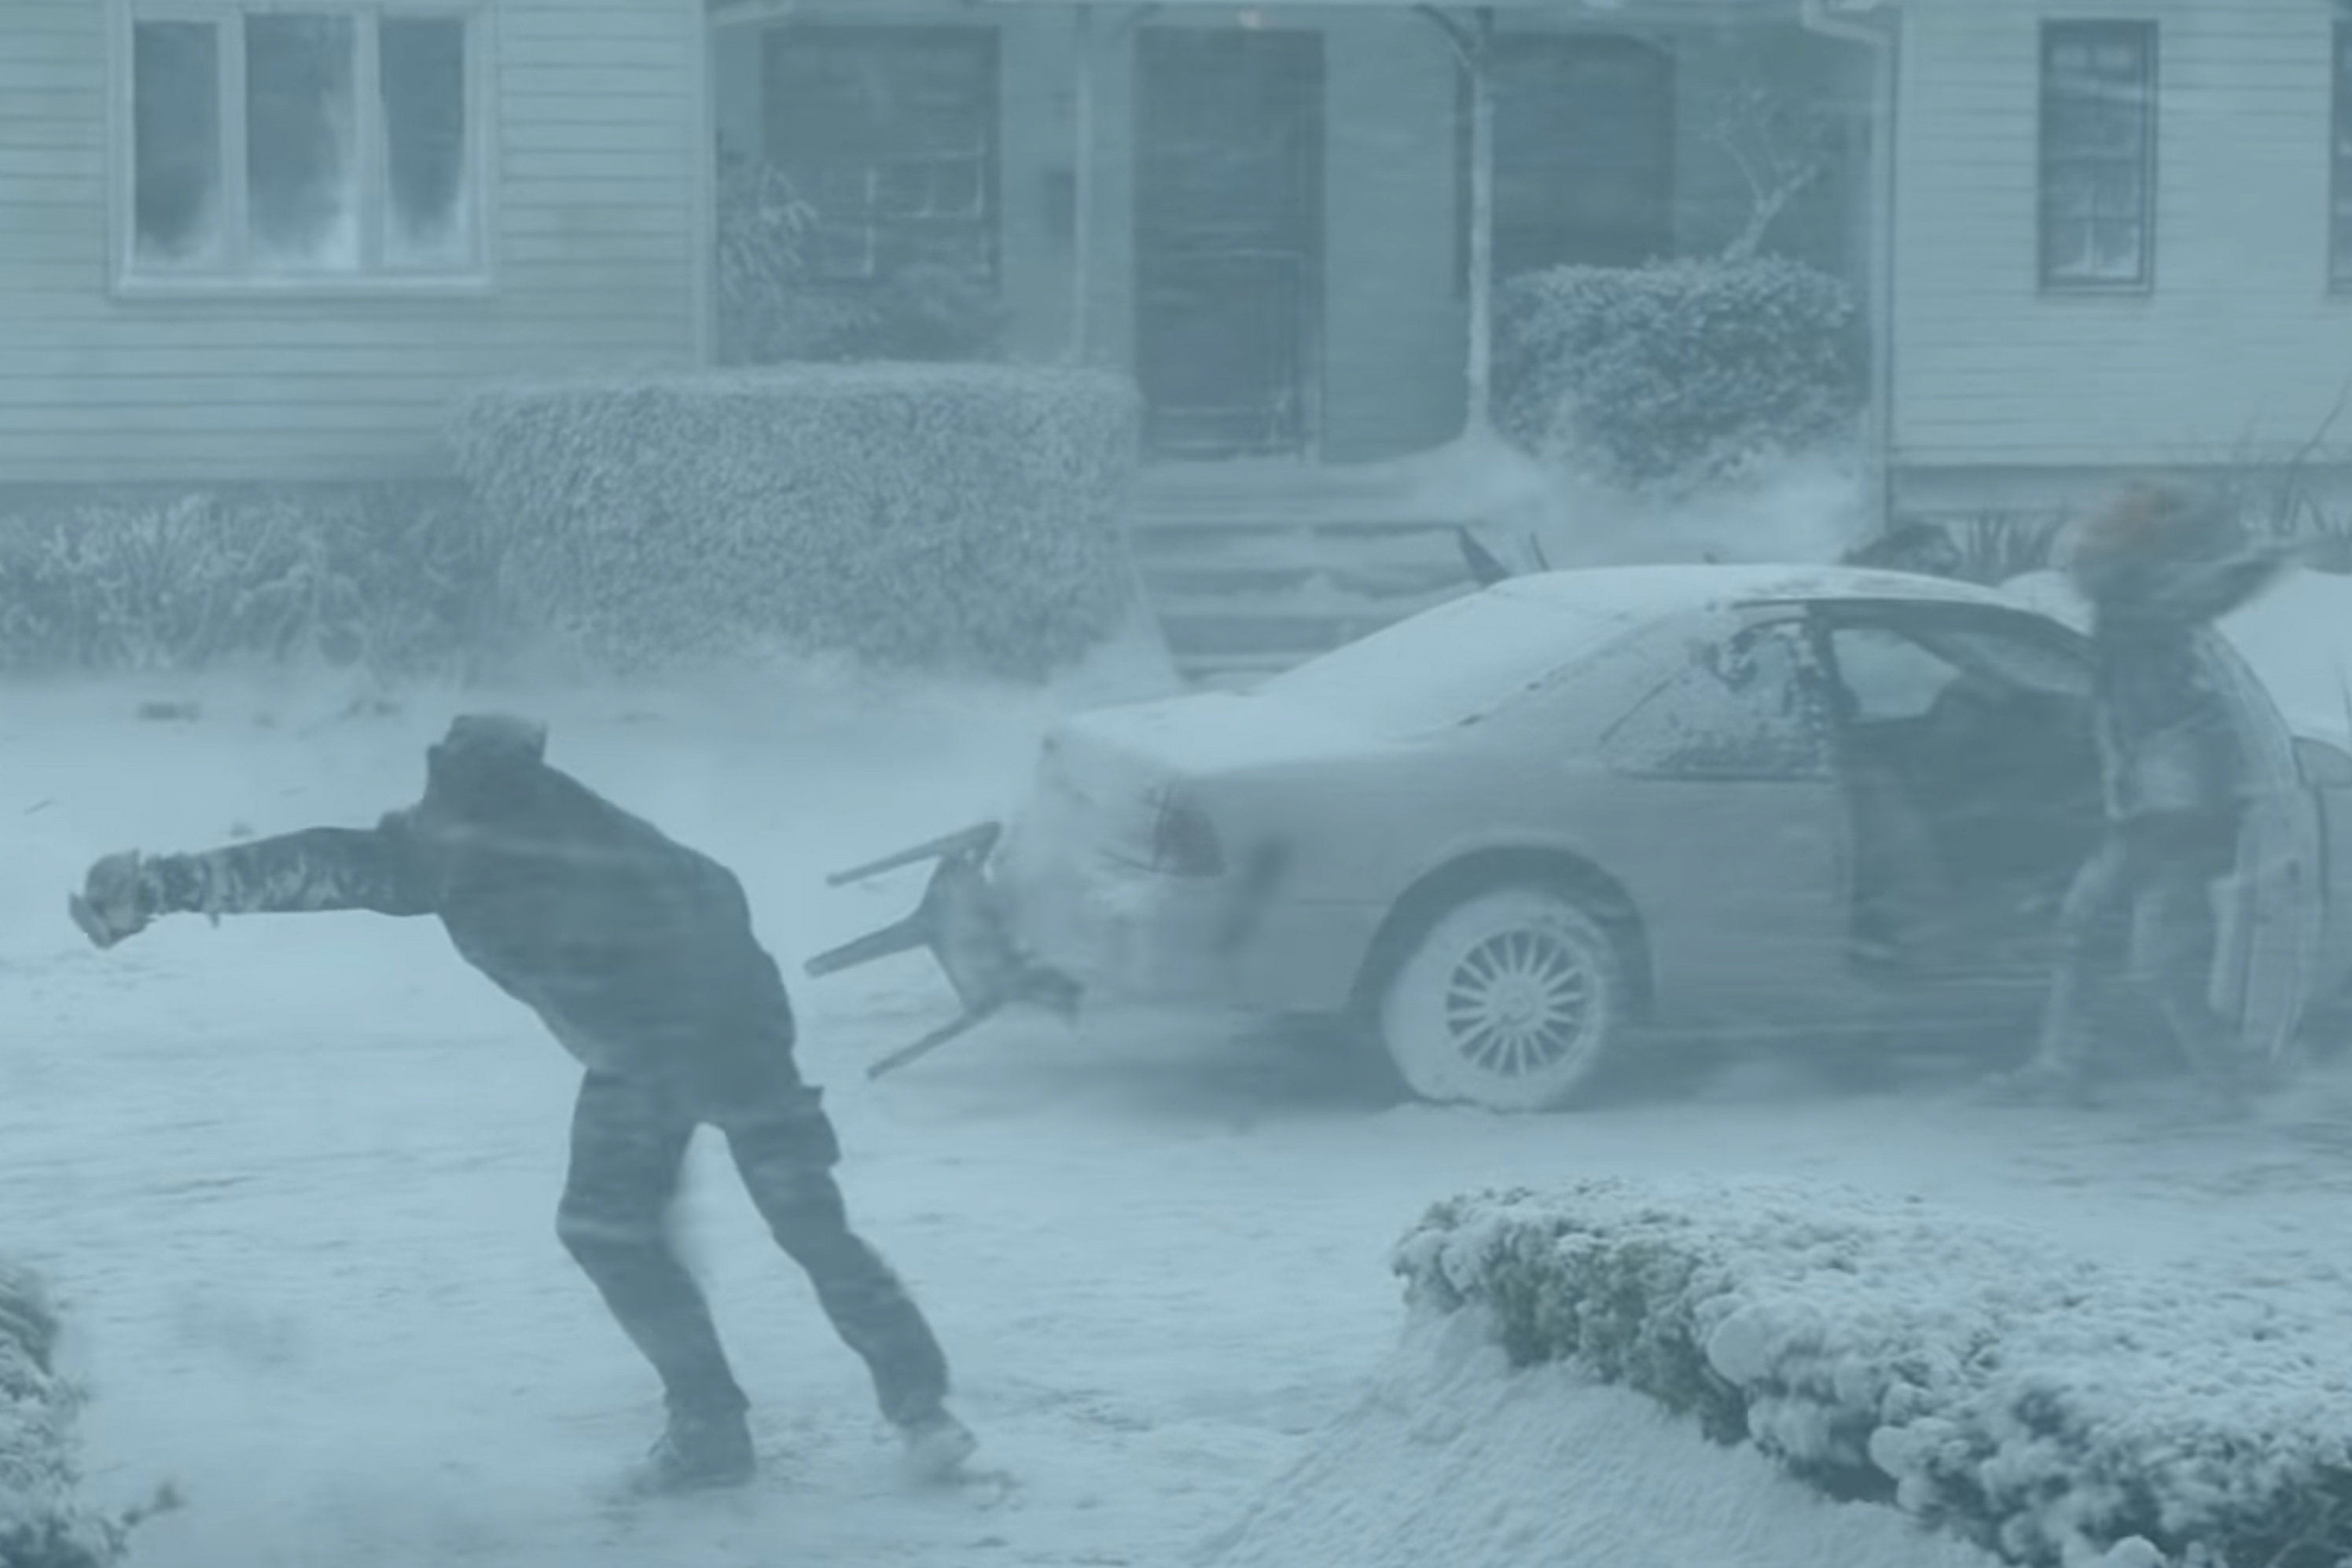 A blizzard is bliss for a gamer in Playstation's Black Friday spot